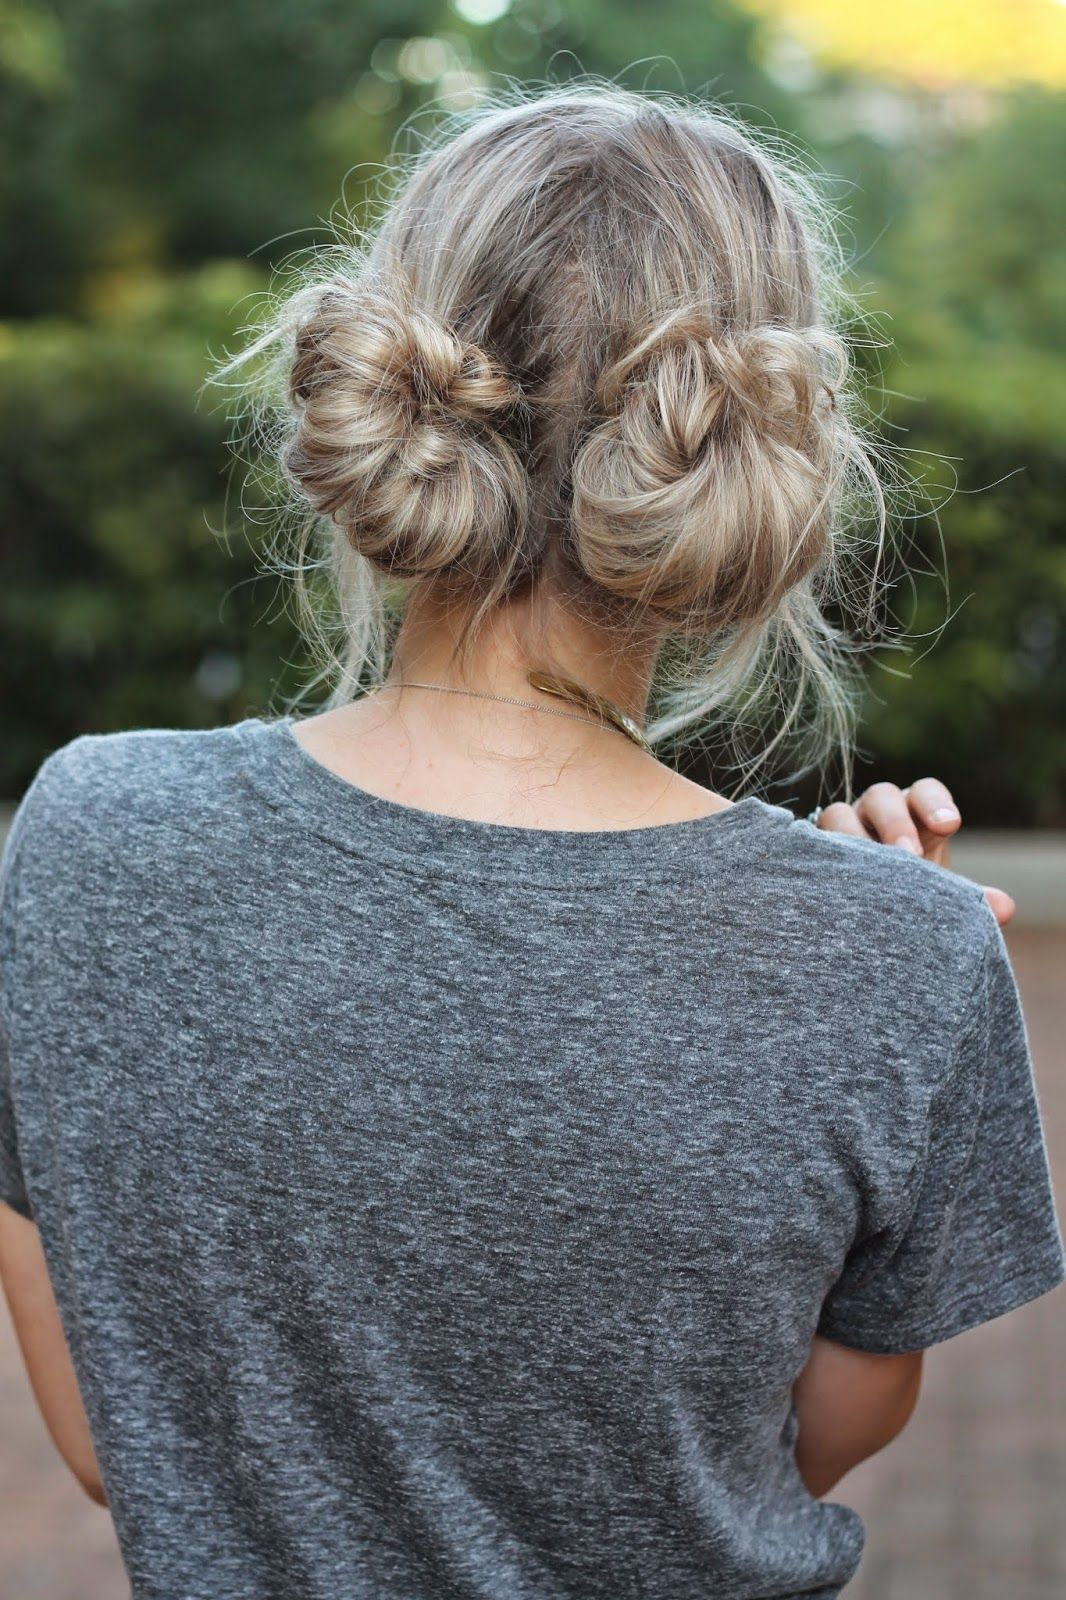 Pin by aaliyahferreira on tumblr pinterest boho hairstyles